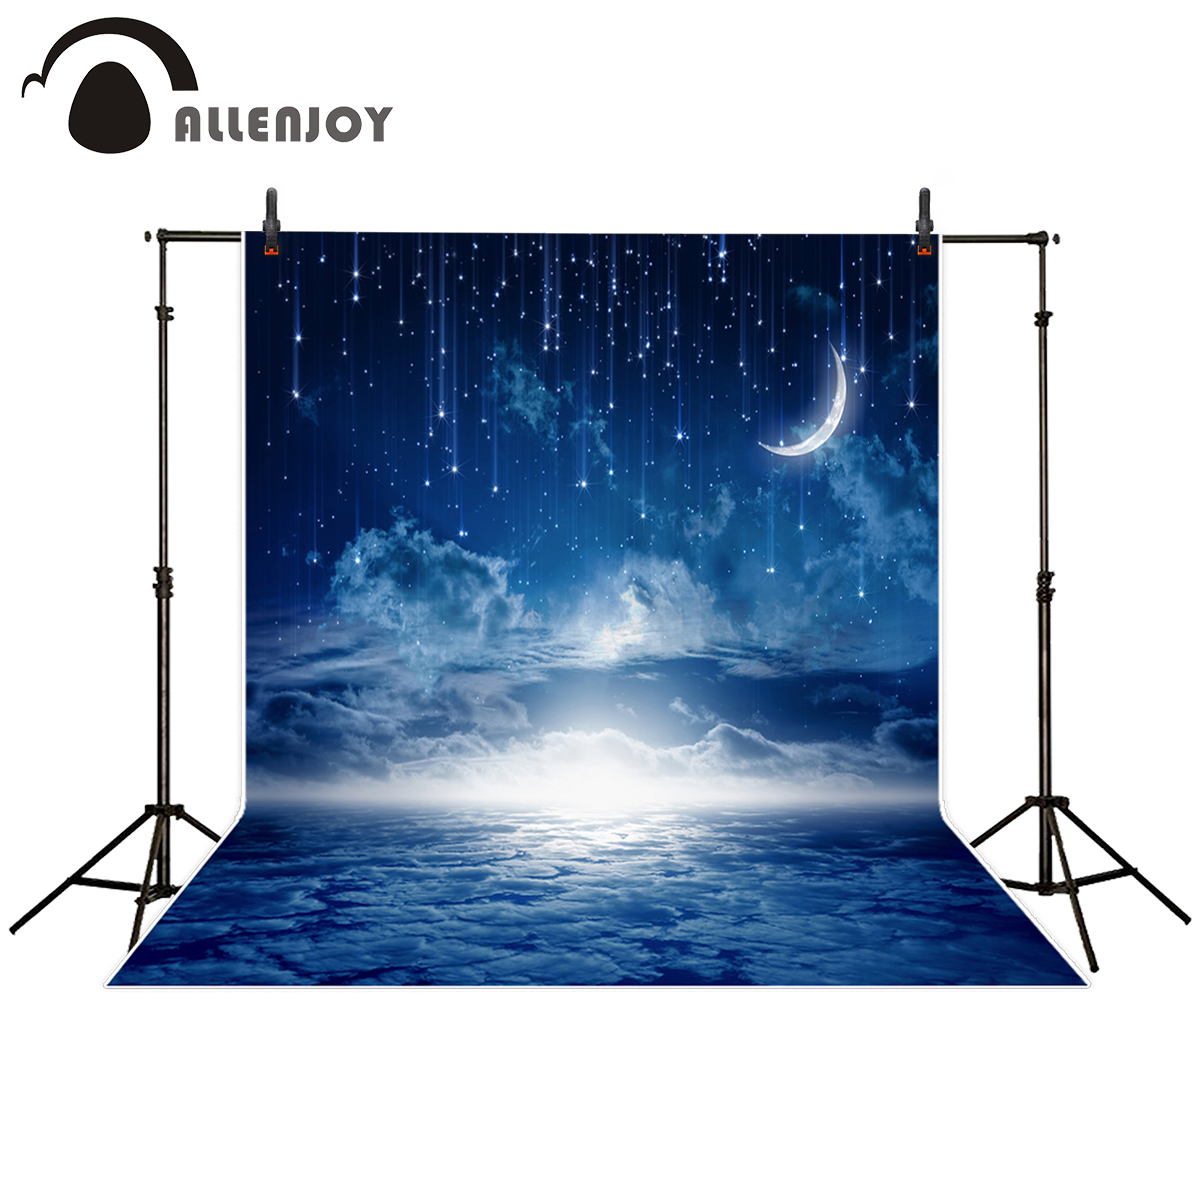 Allenjoy photography backdrop blue sky Meteor glitter crescent moon clouds Sea background for photo studio camera fotografica newborn photography background blue sky white clouds photo backdrop vinyl balloons scattered petals backgrounds for photo studio